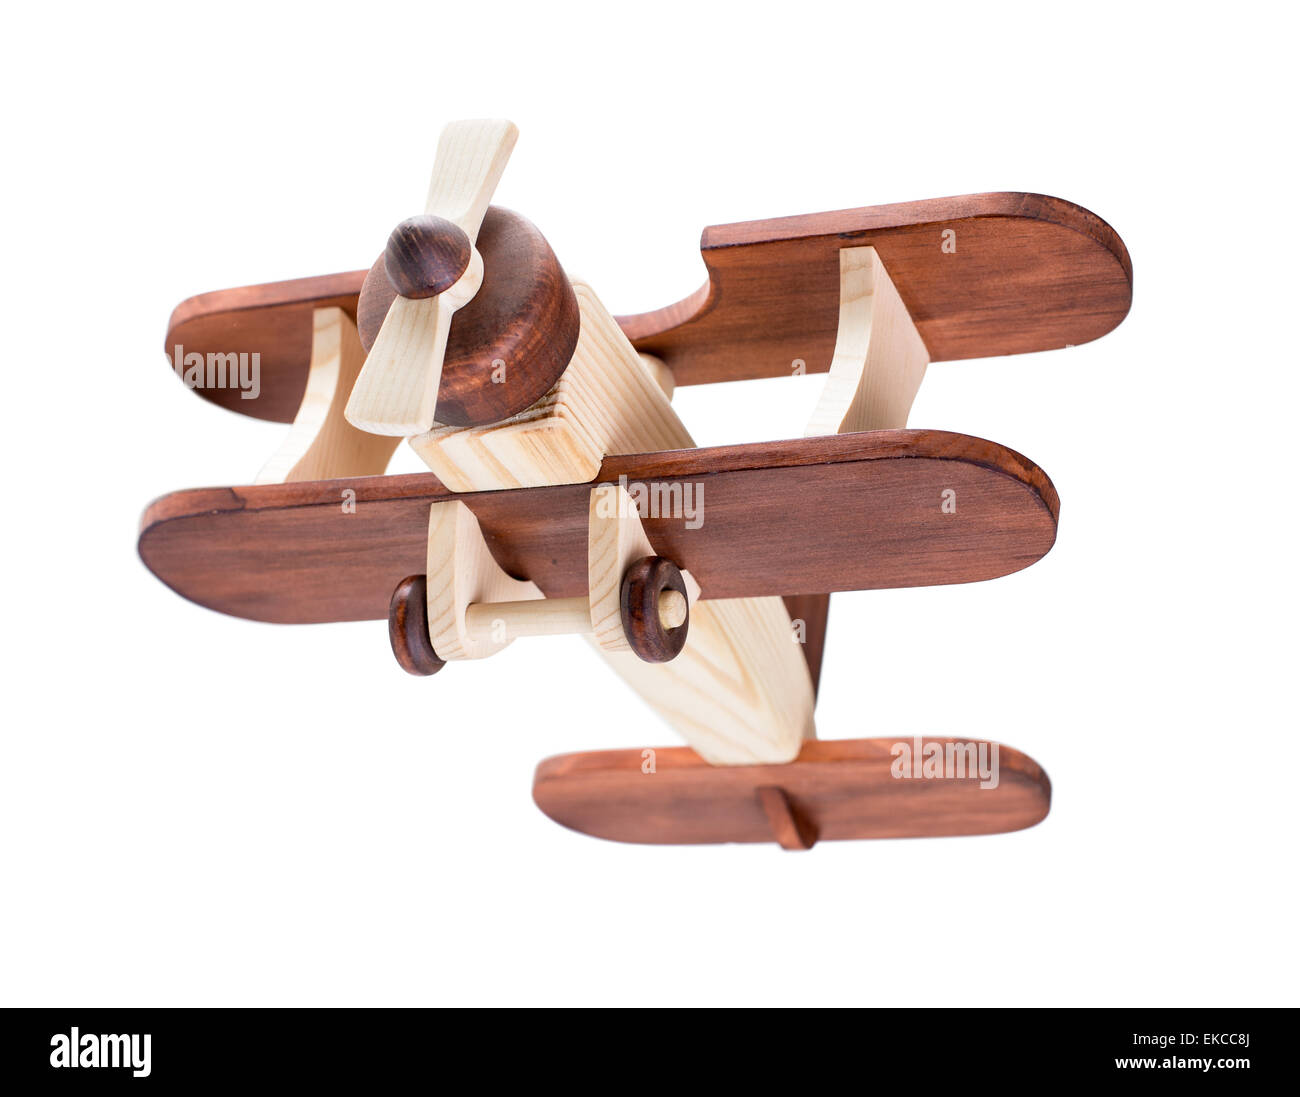 Wooden airplane isolated with clipping path included - Stock Image